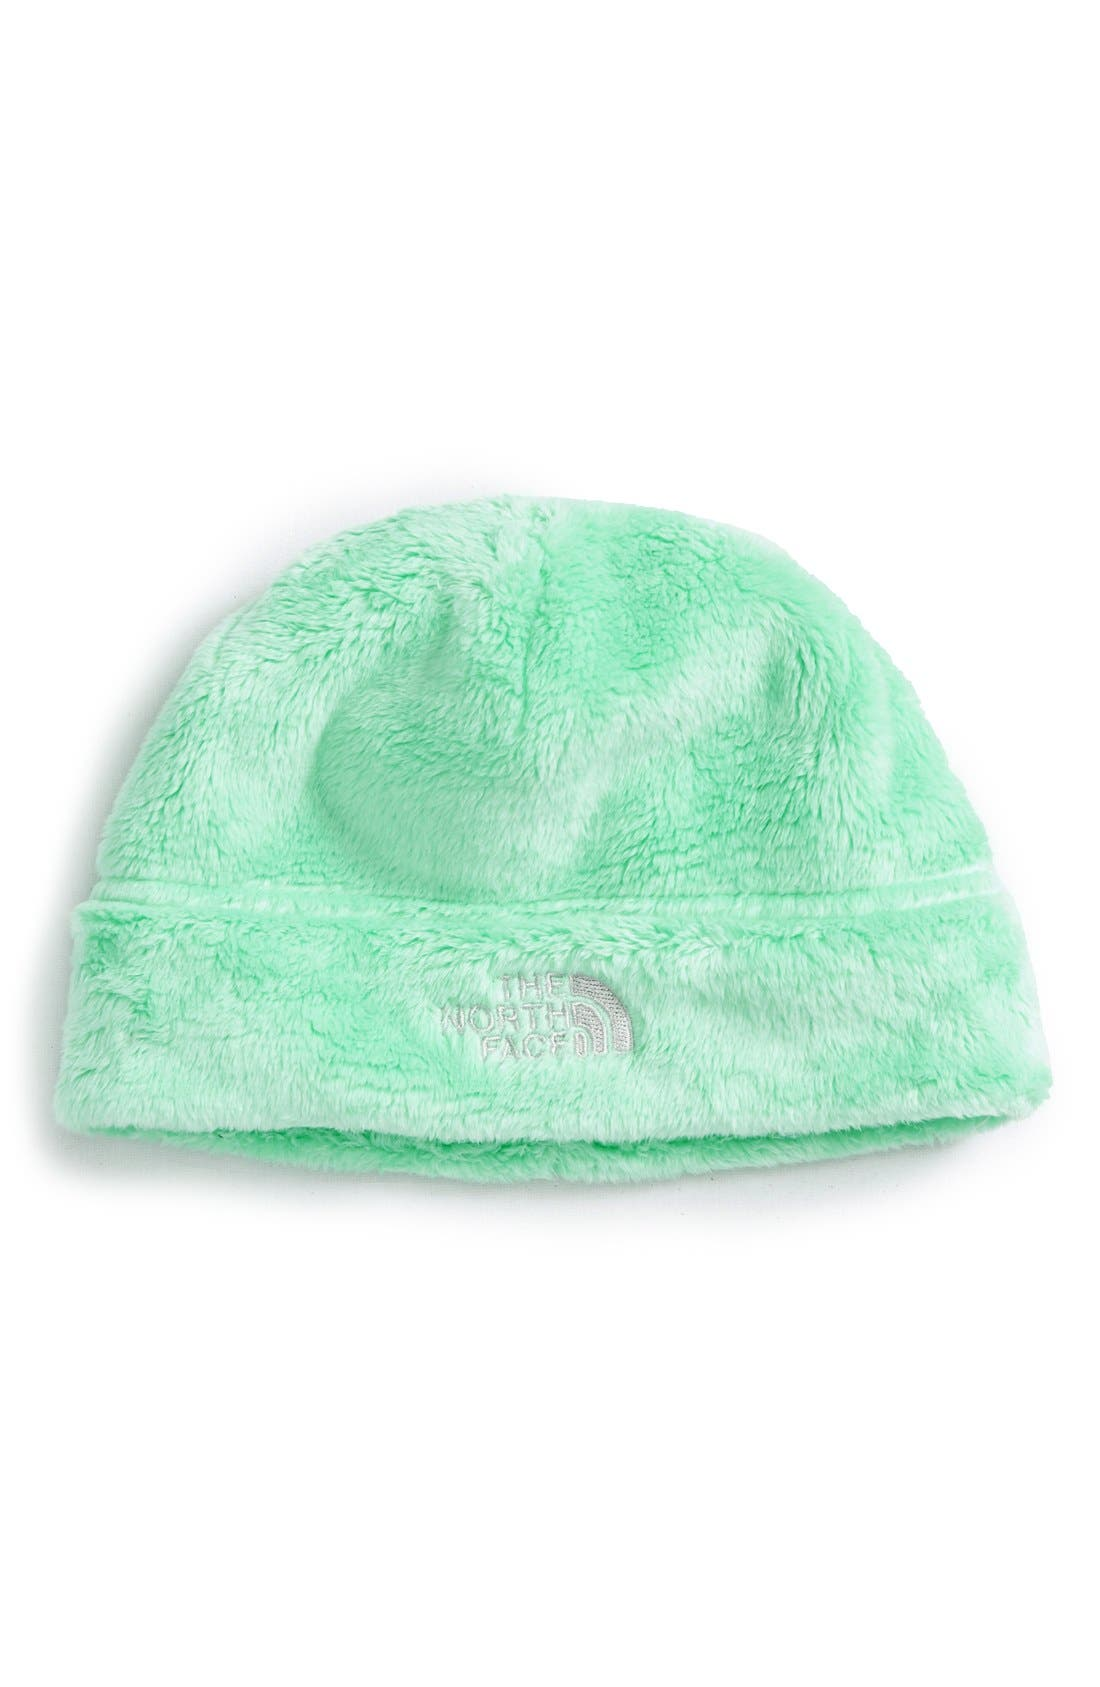 Main Image - The North Face 'Oso Cute' Beanie (Baby)